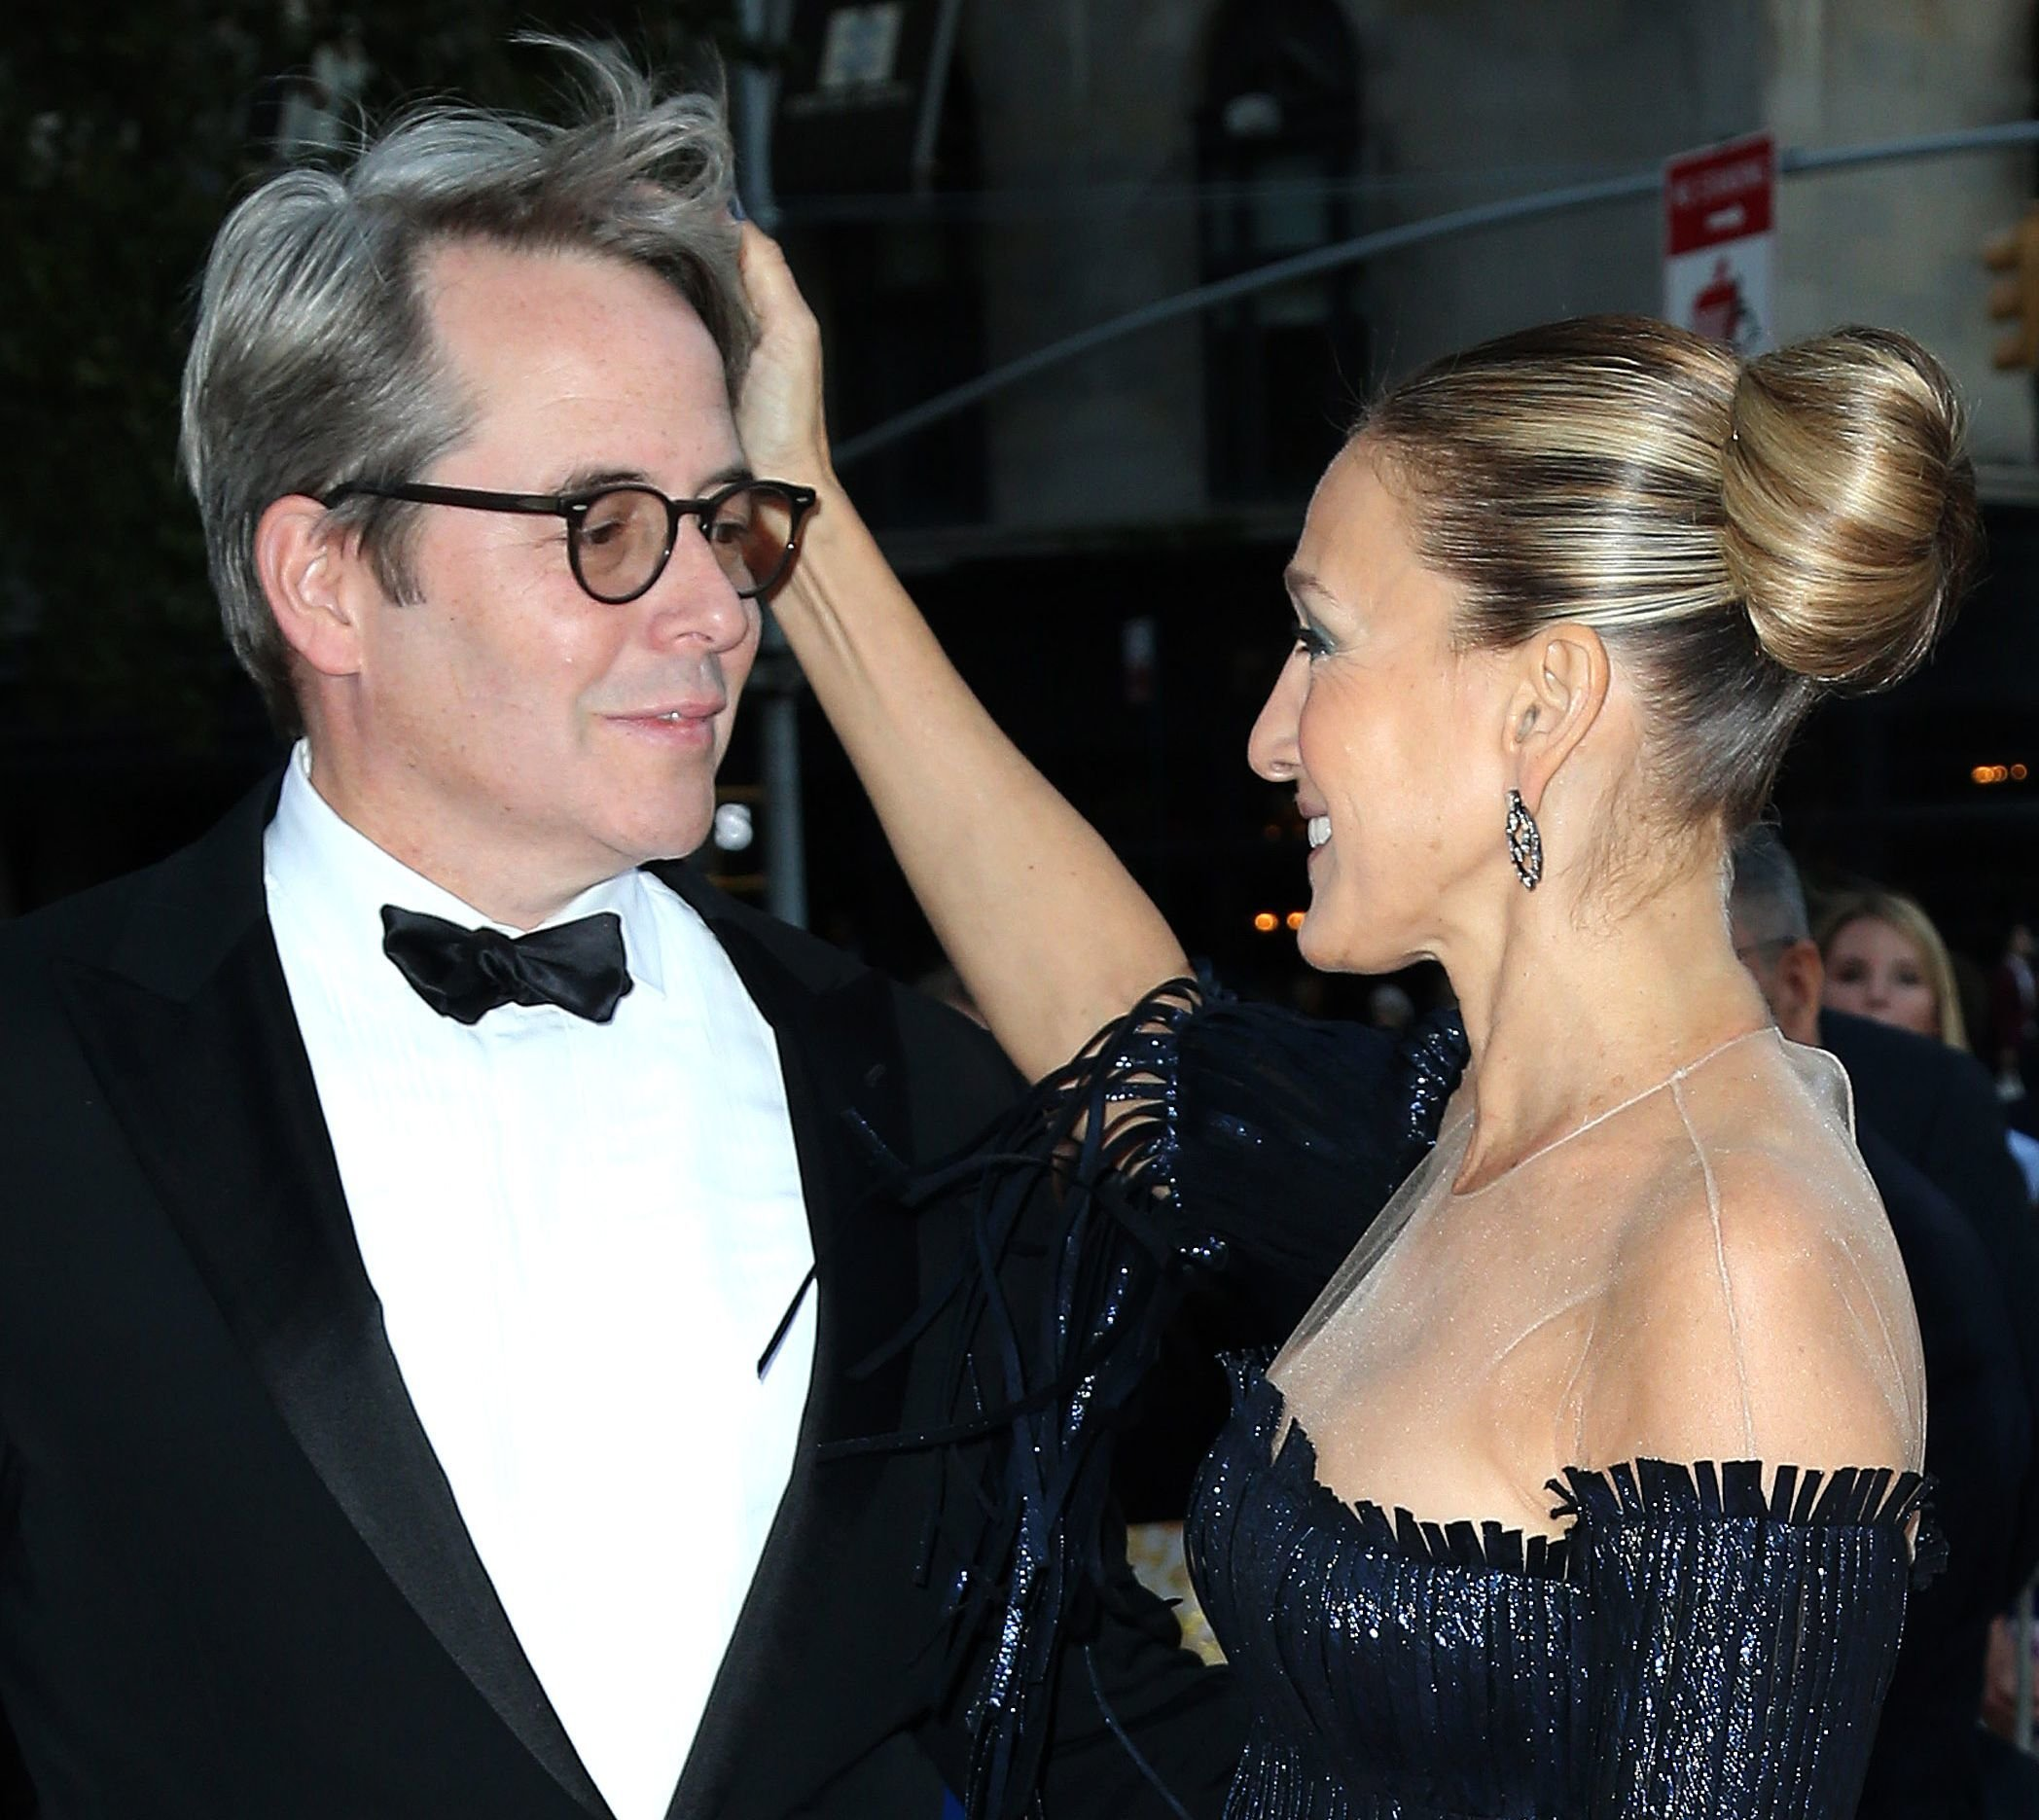 Sarah Jessica Parker, Matthew Broderick New York City Ballet 2017 Fall Fashion Gala, USA - 28 Sep 2017 New York City Ballet's 2017 Fall Fashion Gala at David H. Koch Theater at Lincoln Center - Outside, Image: 350892597, License: Rights-managed, Restrictions: , Model Release: no, Credit line: Profimedia, TEMP Rex Features